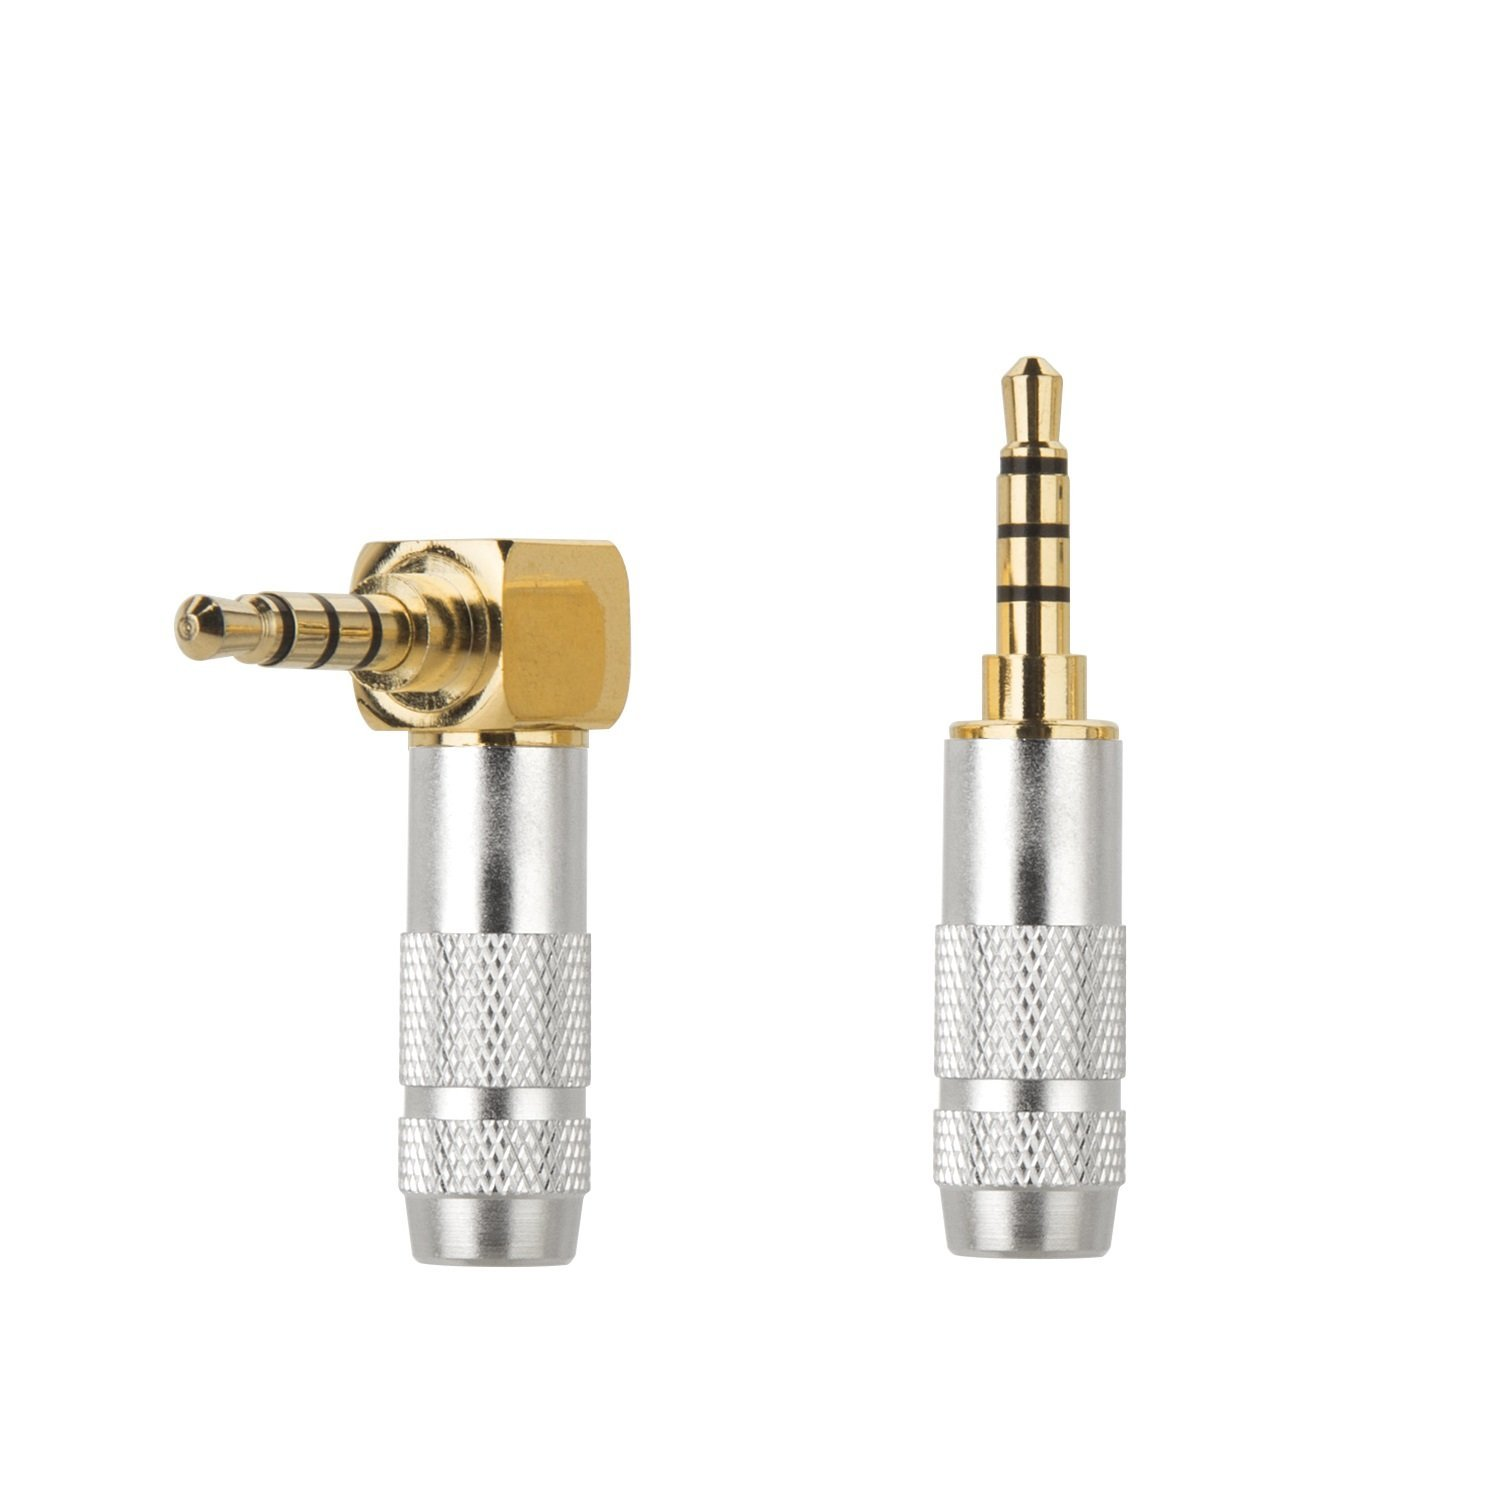 35mm Jack Wiring Cheap 3 5mm 4 Pole Find Deals On Line At Get Quotations Timibis 2pcs Barss Stereo Audio Plug Connector Male Headphone Soldering